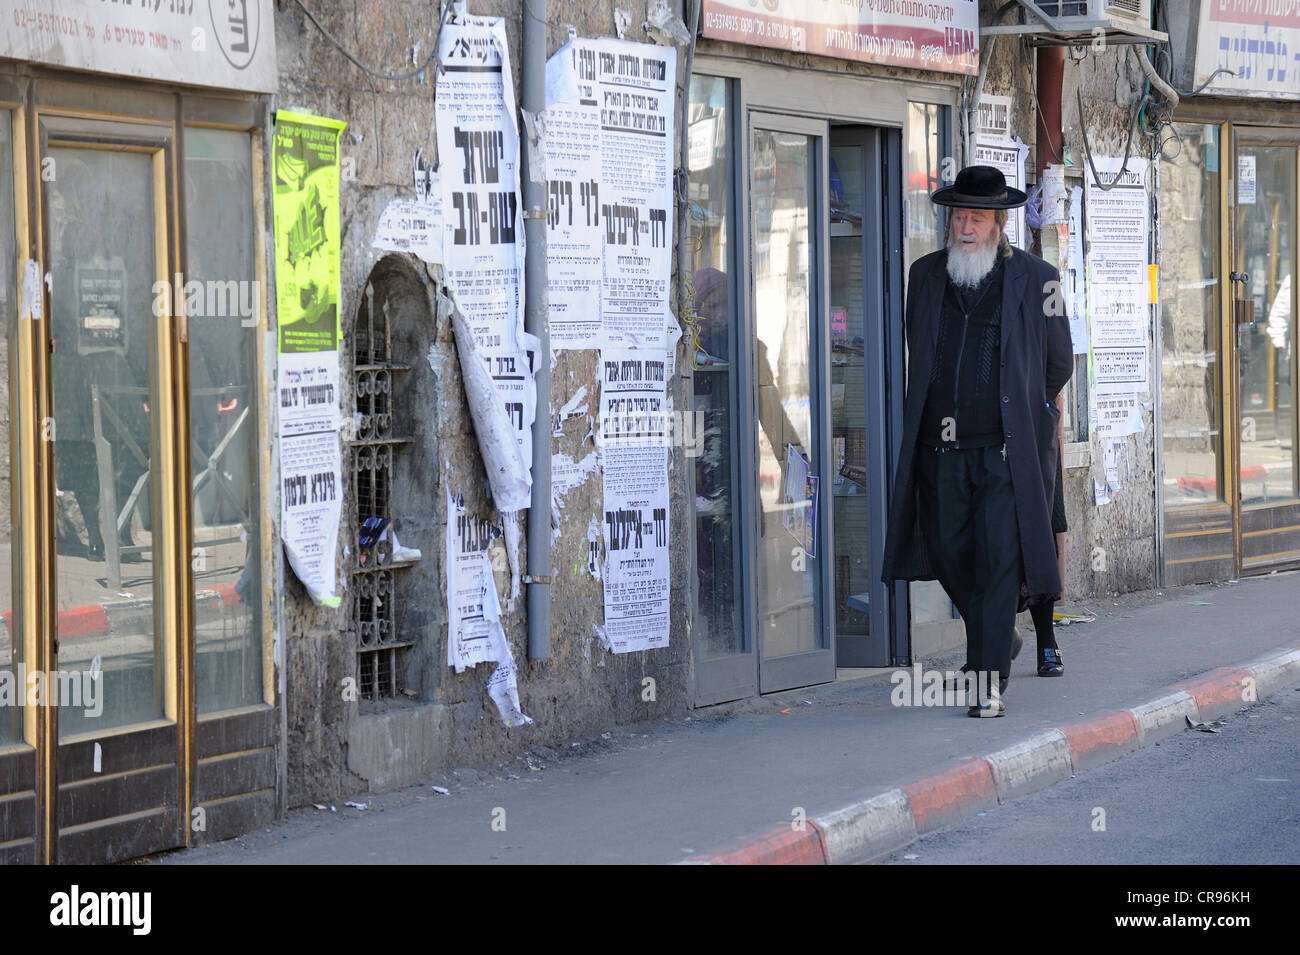 Street scene with an Orthodox Jew and typical wall newspapers in the district of Me'a She'arim or Mea Shearim, - Stock Image